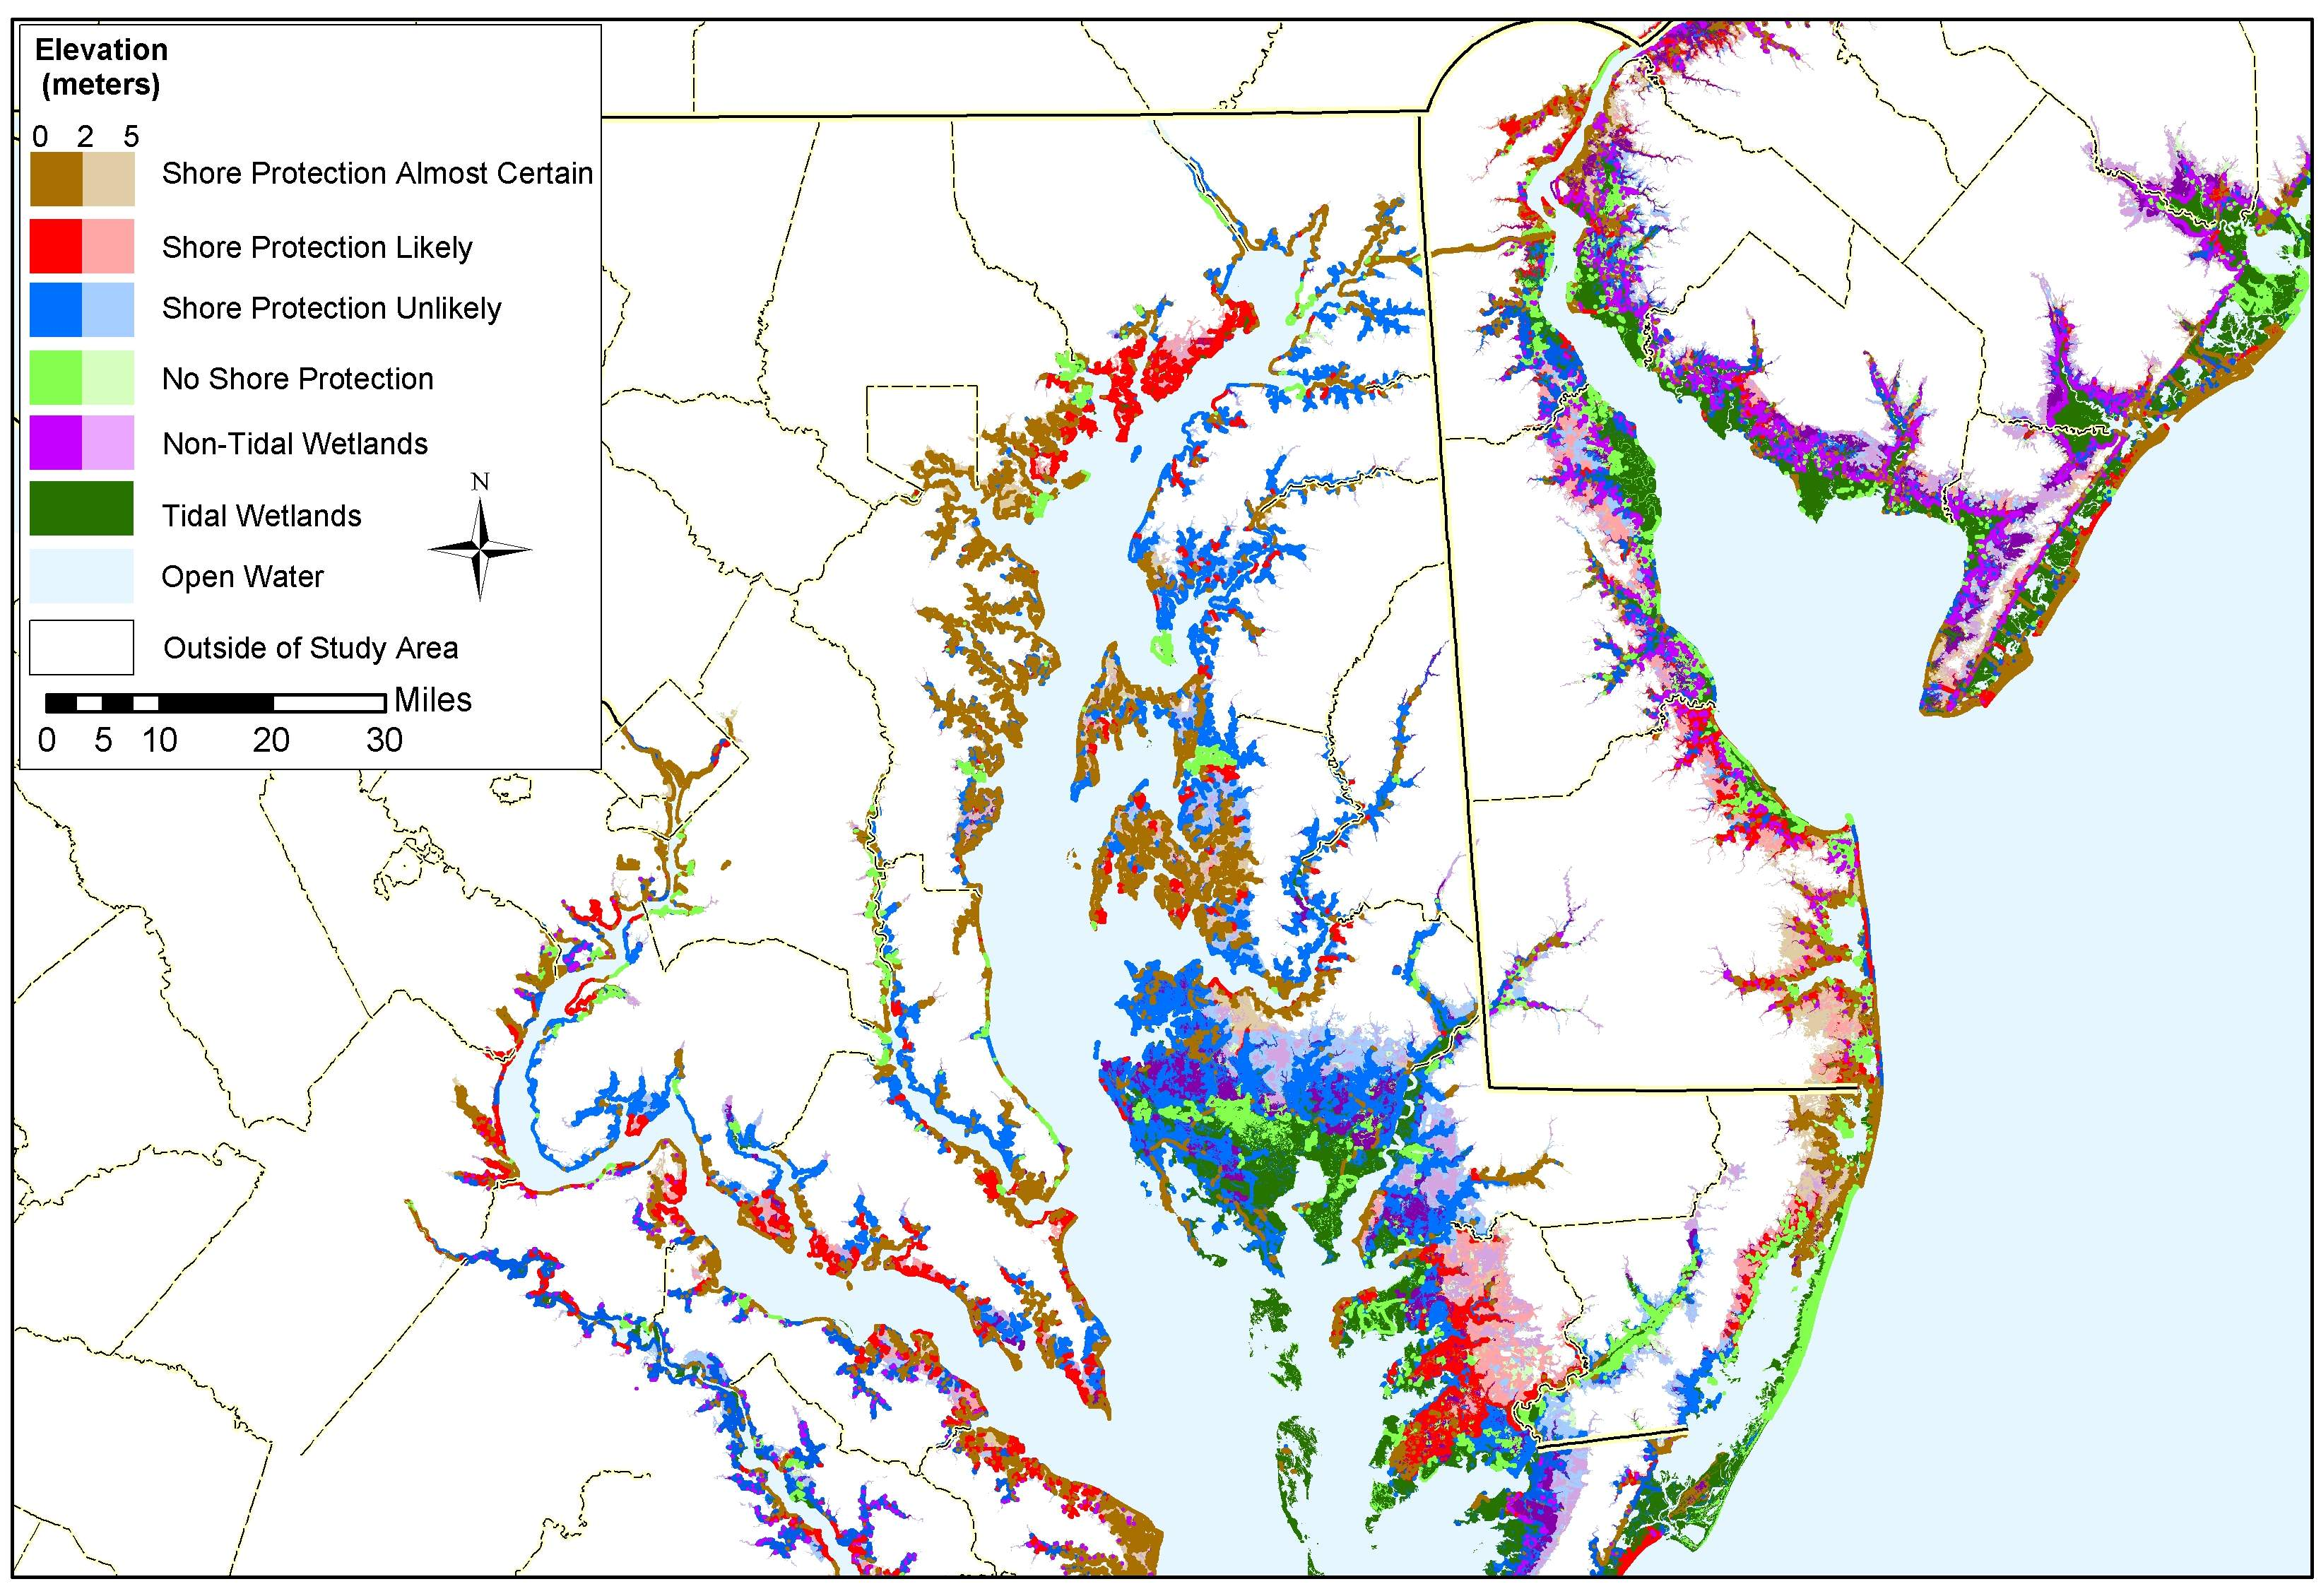 maryland sea level rise planning map. adapting to global warming